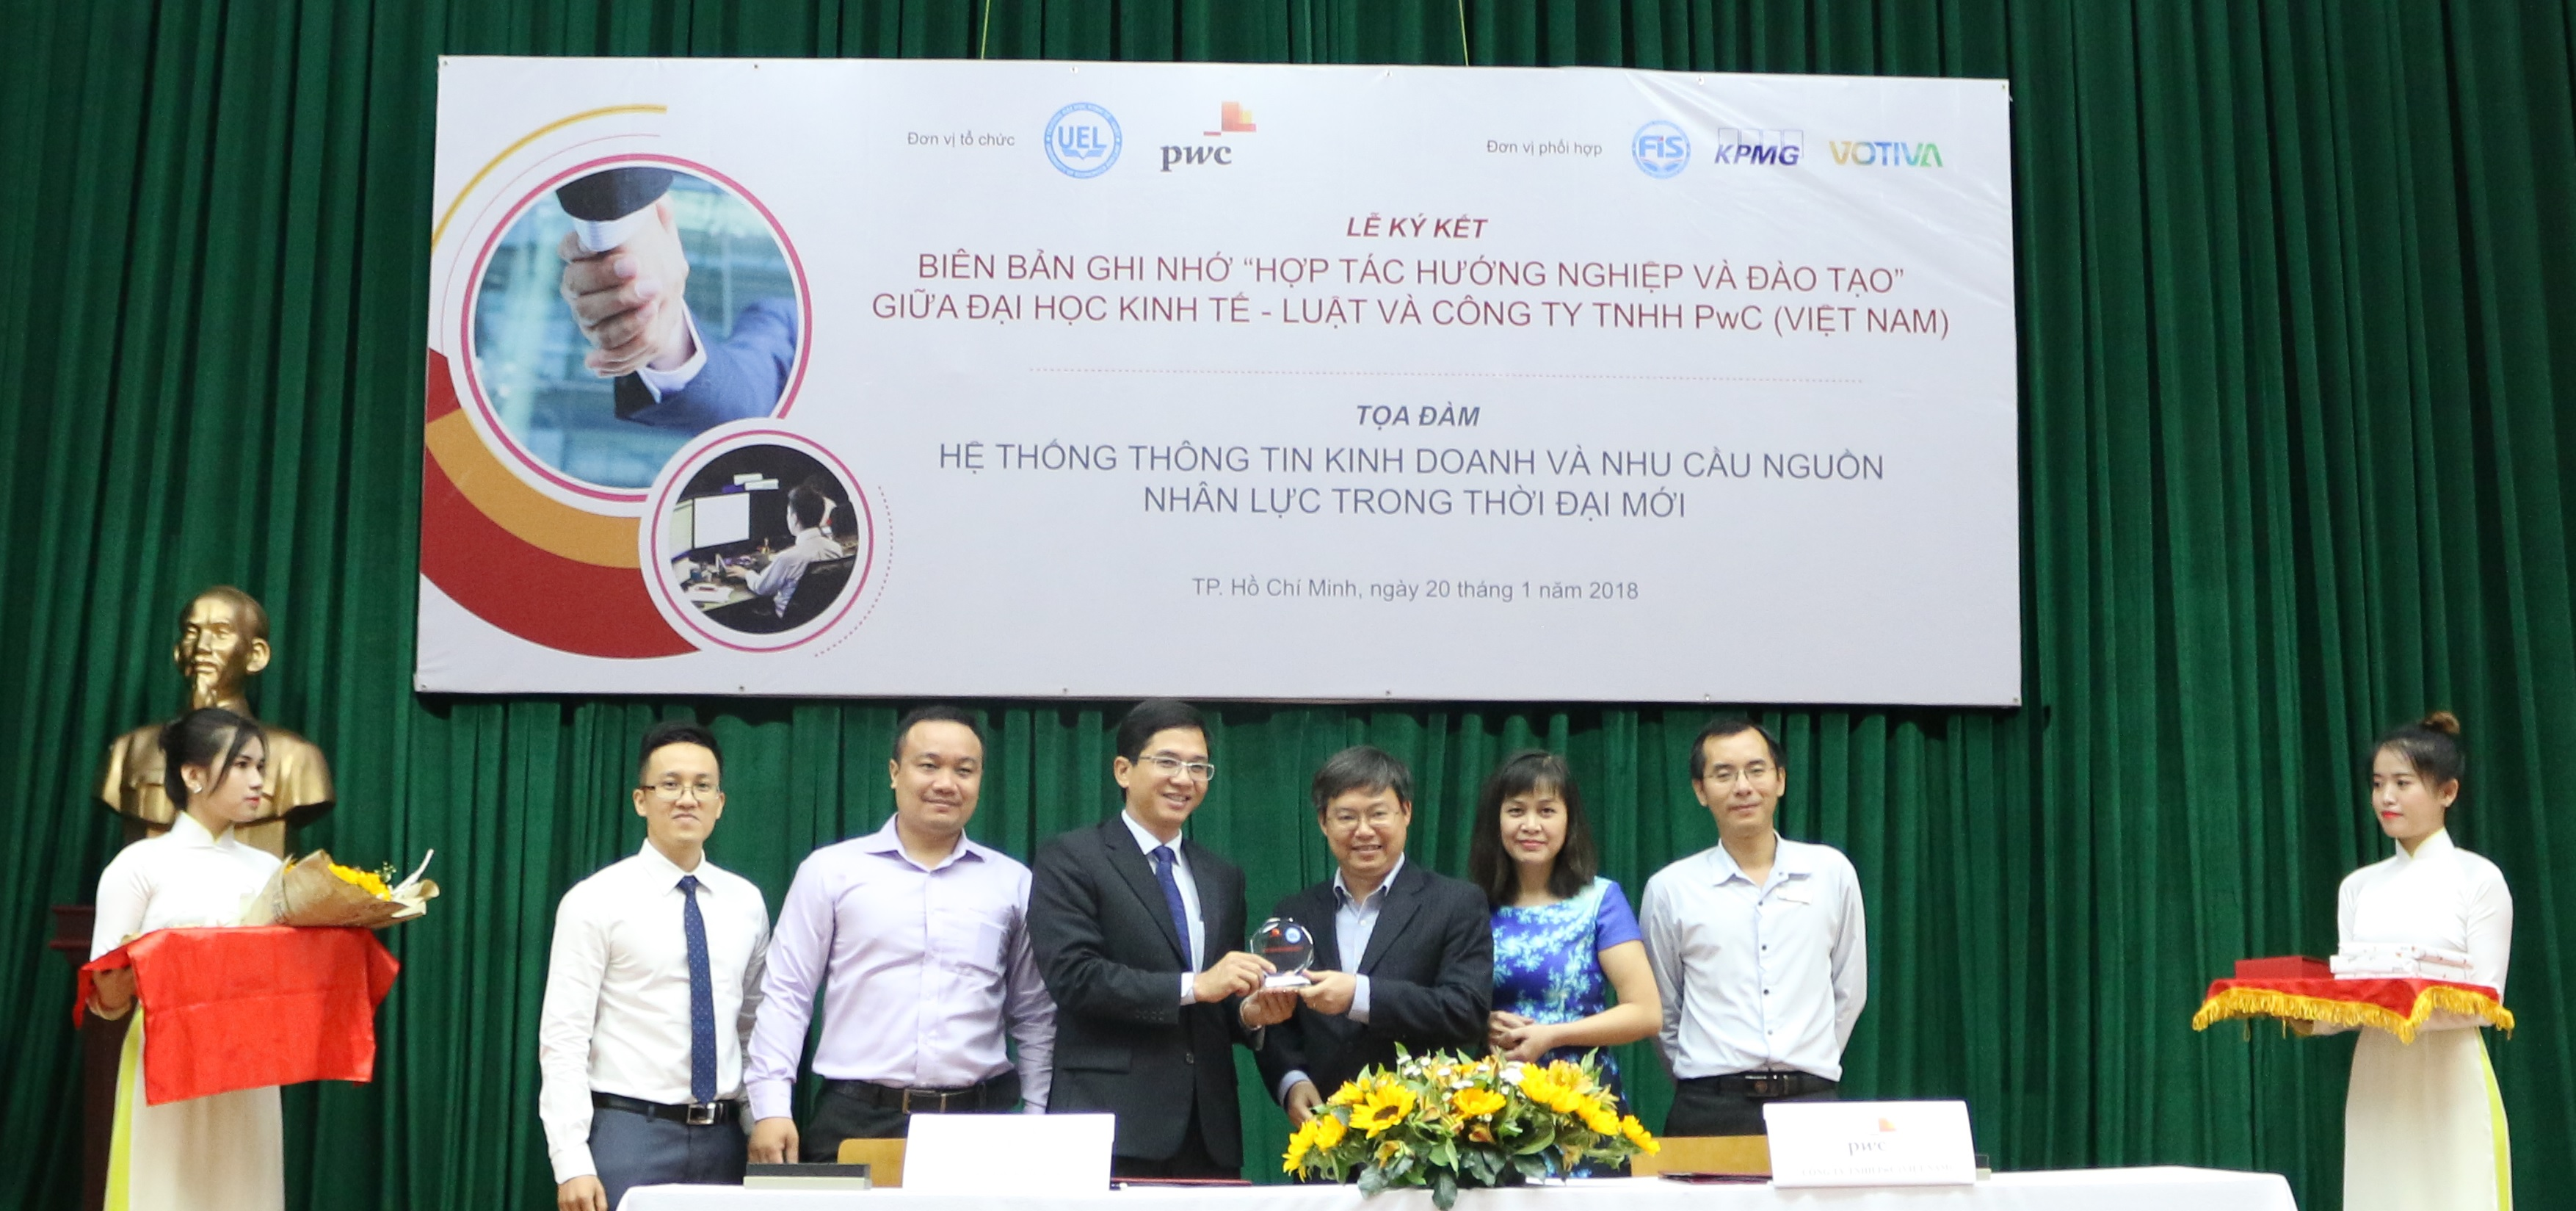 pwc vietnam and uel form strategic partnership in career orientation and training